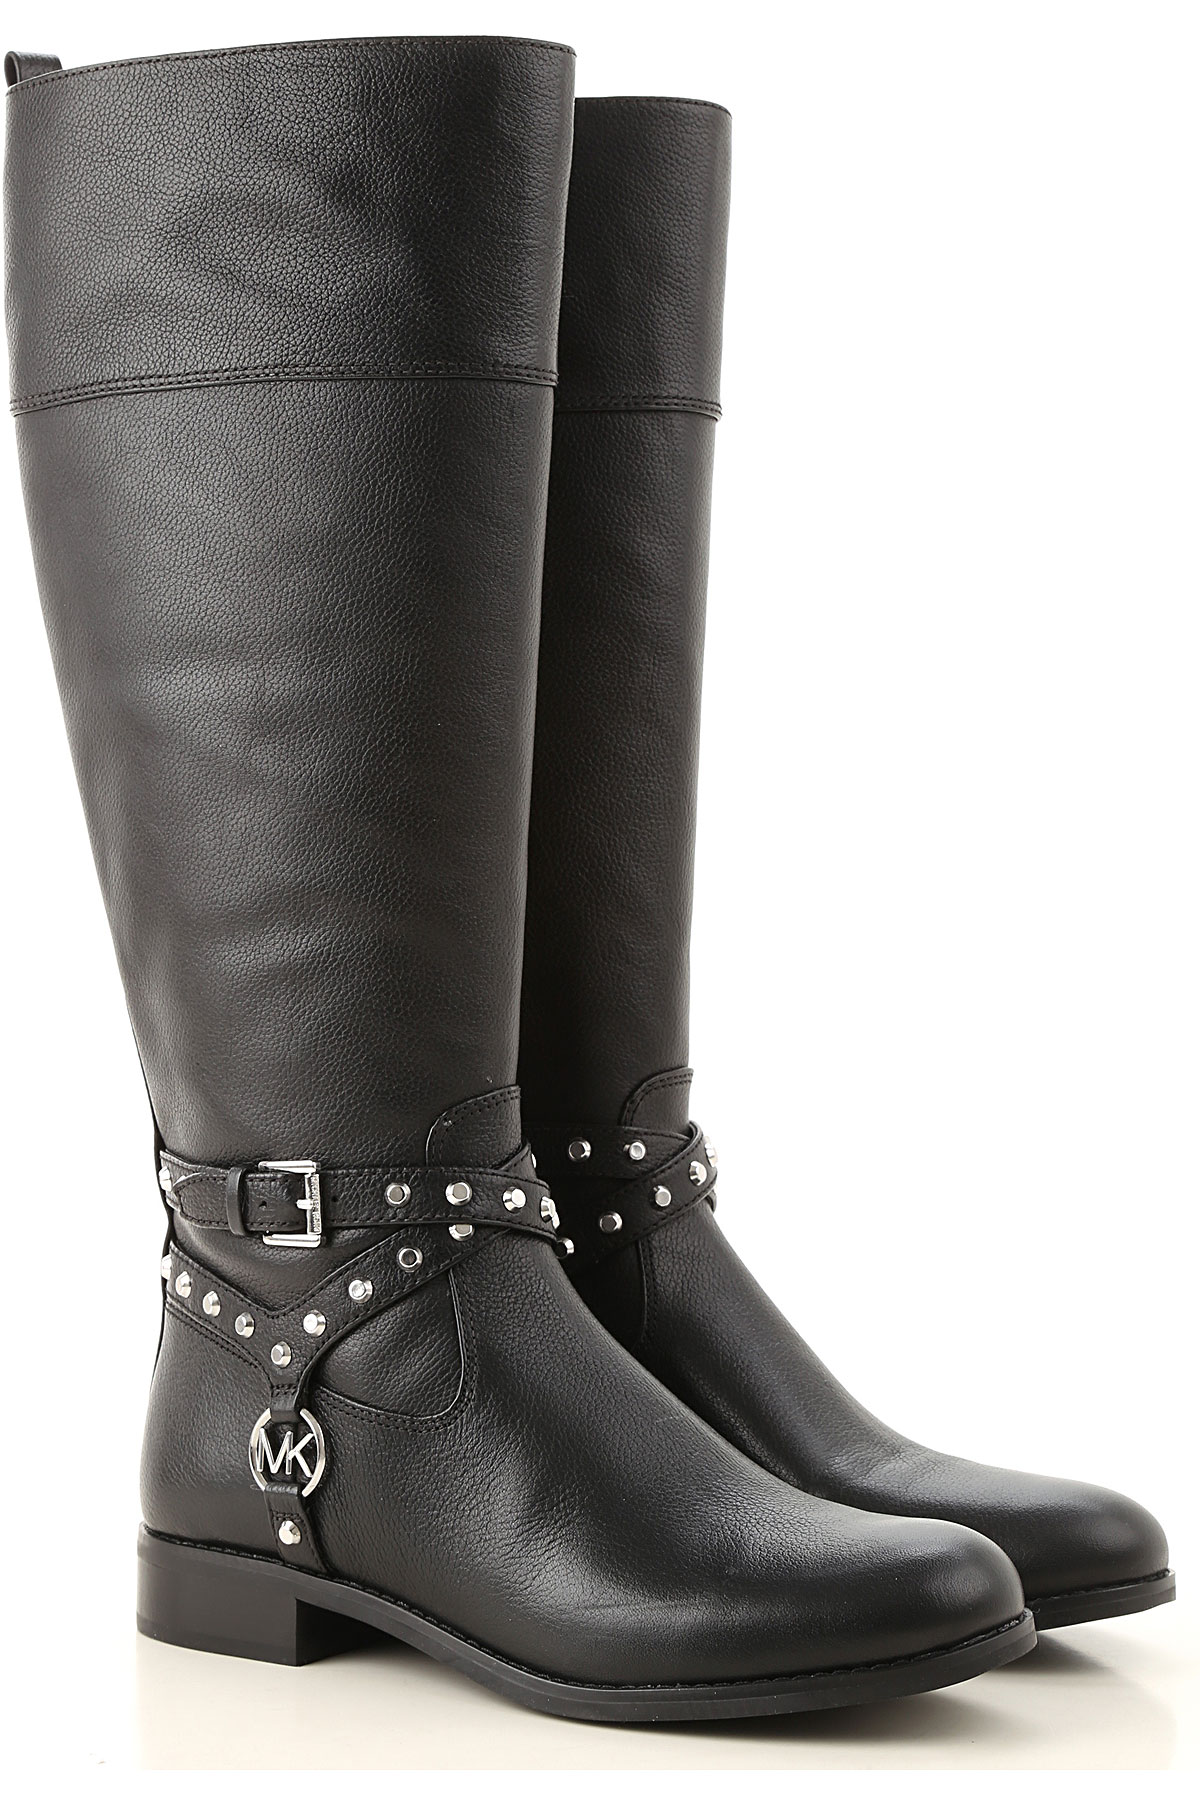 Michael Kors Boots for Women, Booties On Sale, Black, Leather, 2019, 6 7 8 9.5